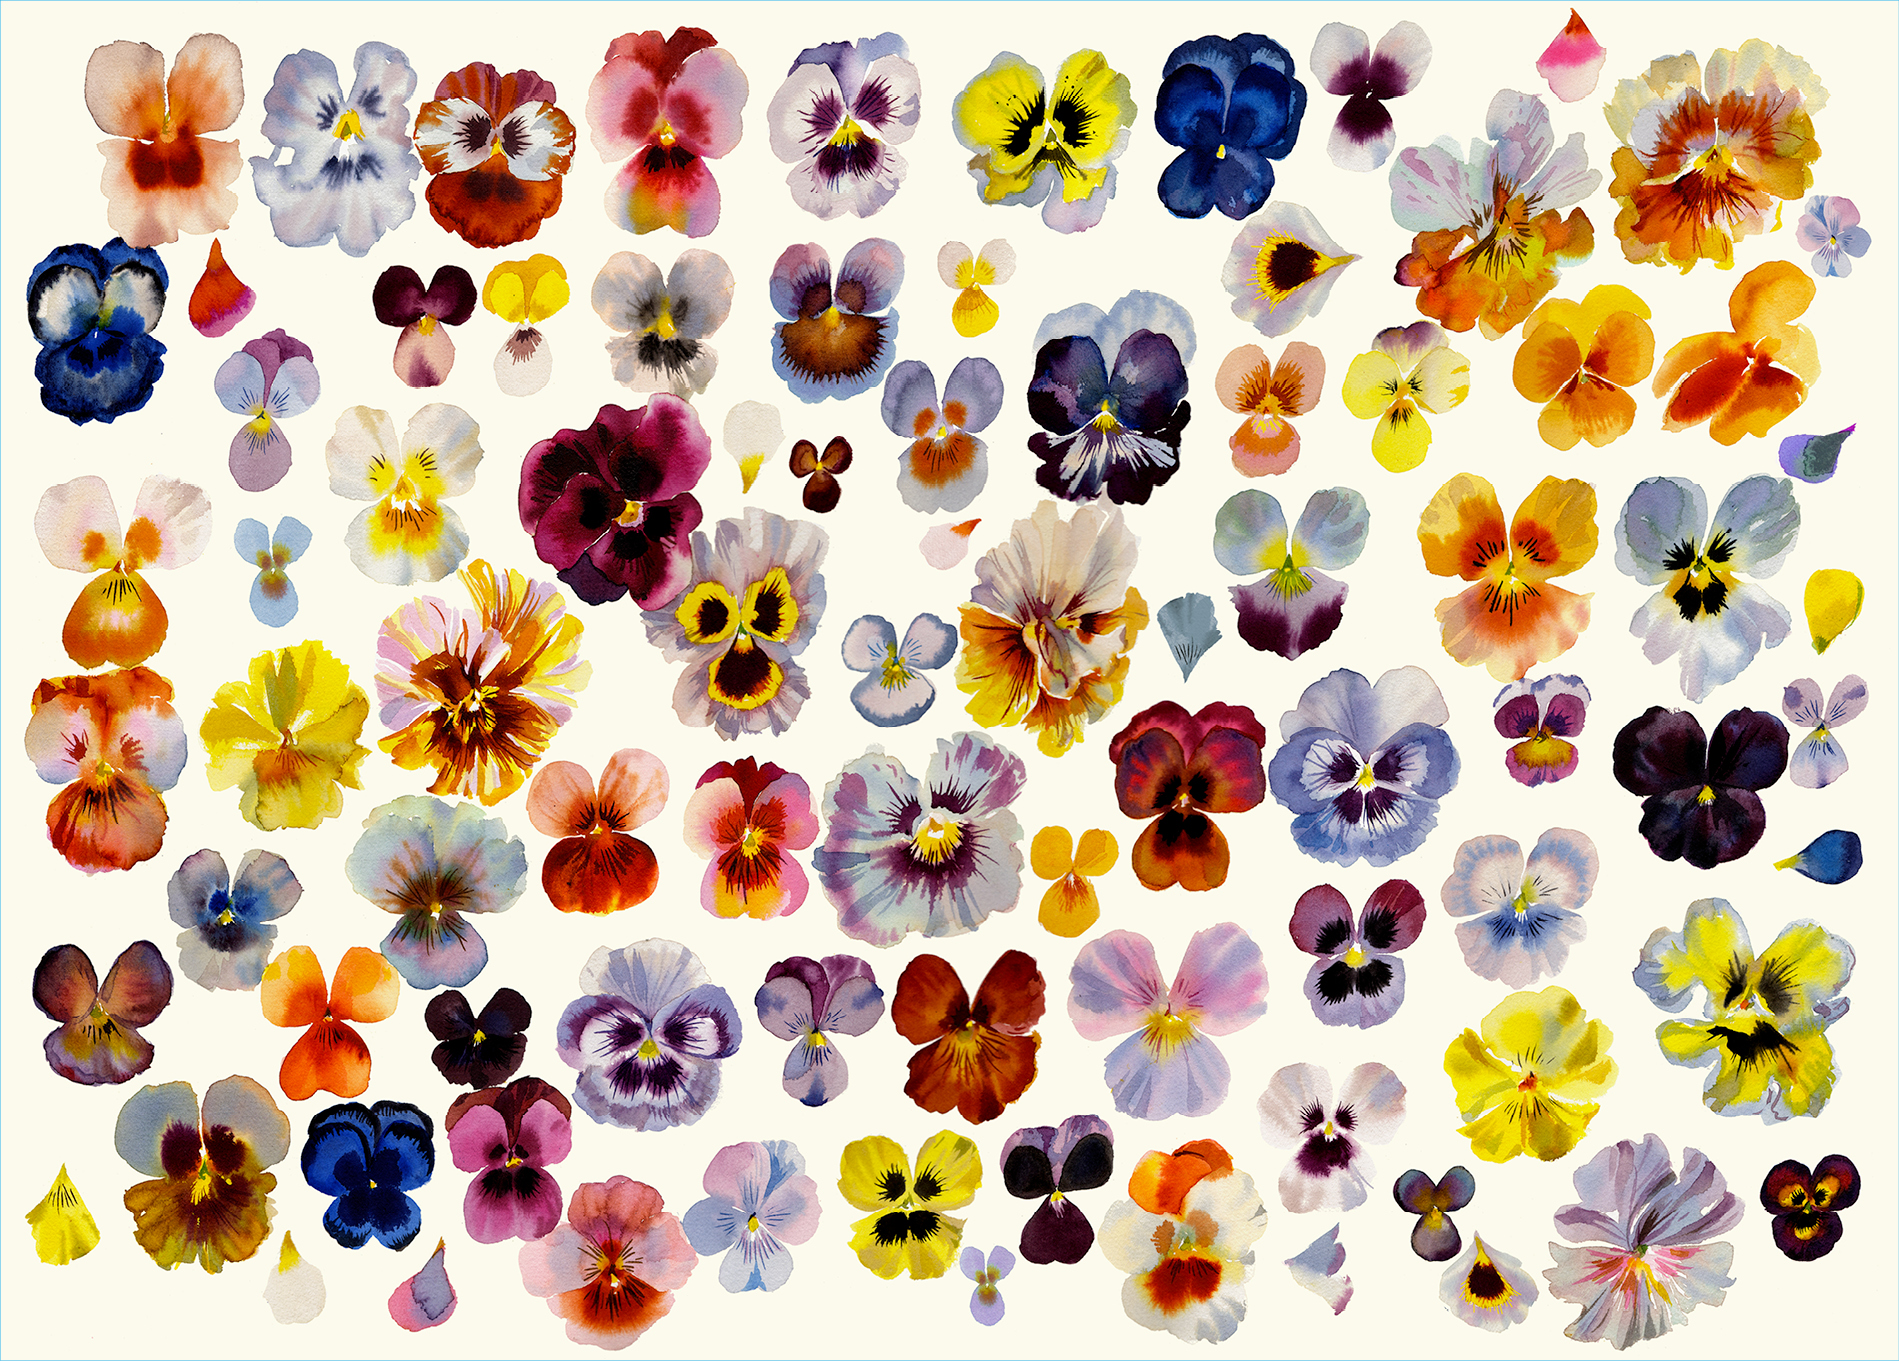 A Field of Pansies Flowers Jigsaw Puzzle